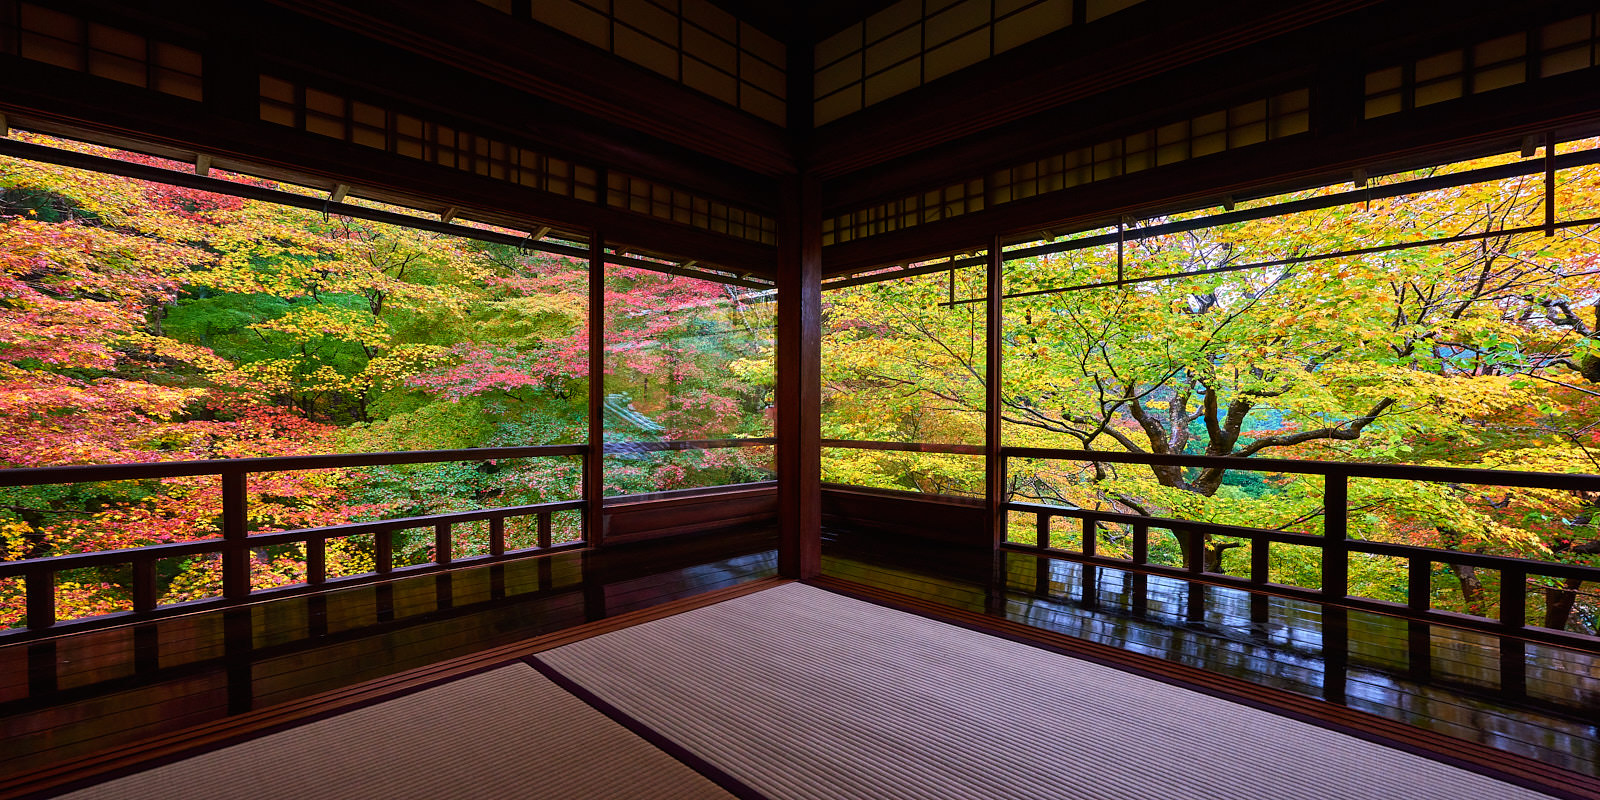 a panoramic scene at the Rurikoin temple in Kyoto, Japan with colorful maple trees in the background